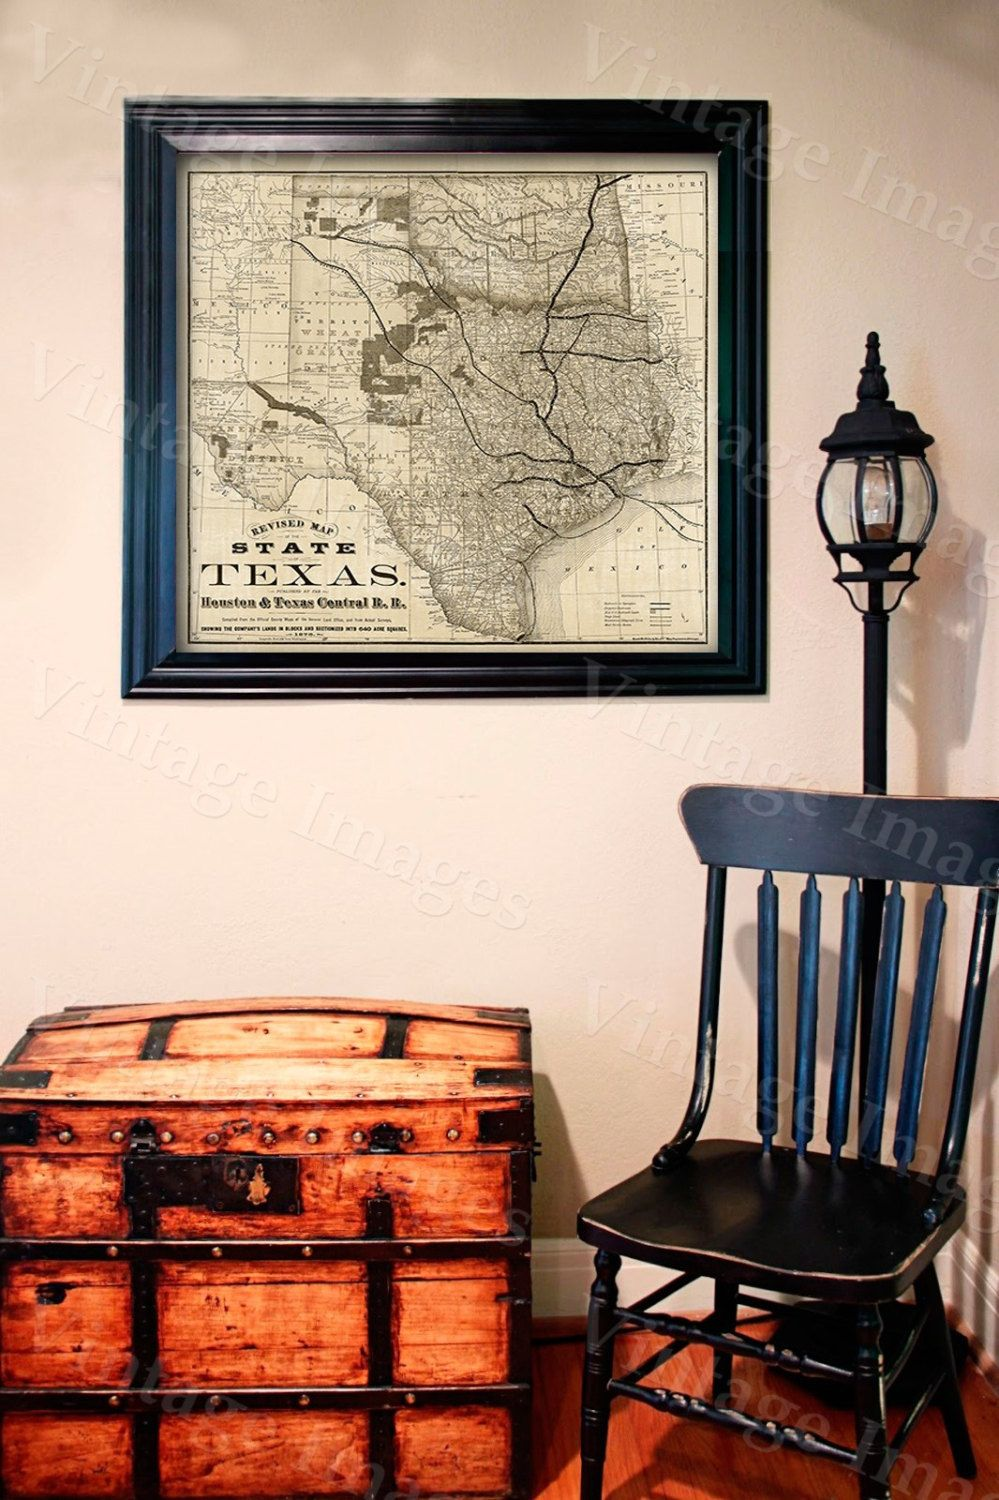 Texas Wall Art old map of texas 1876 vintage historical wall map antique